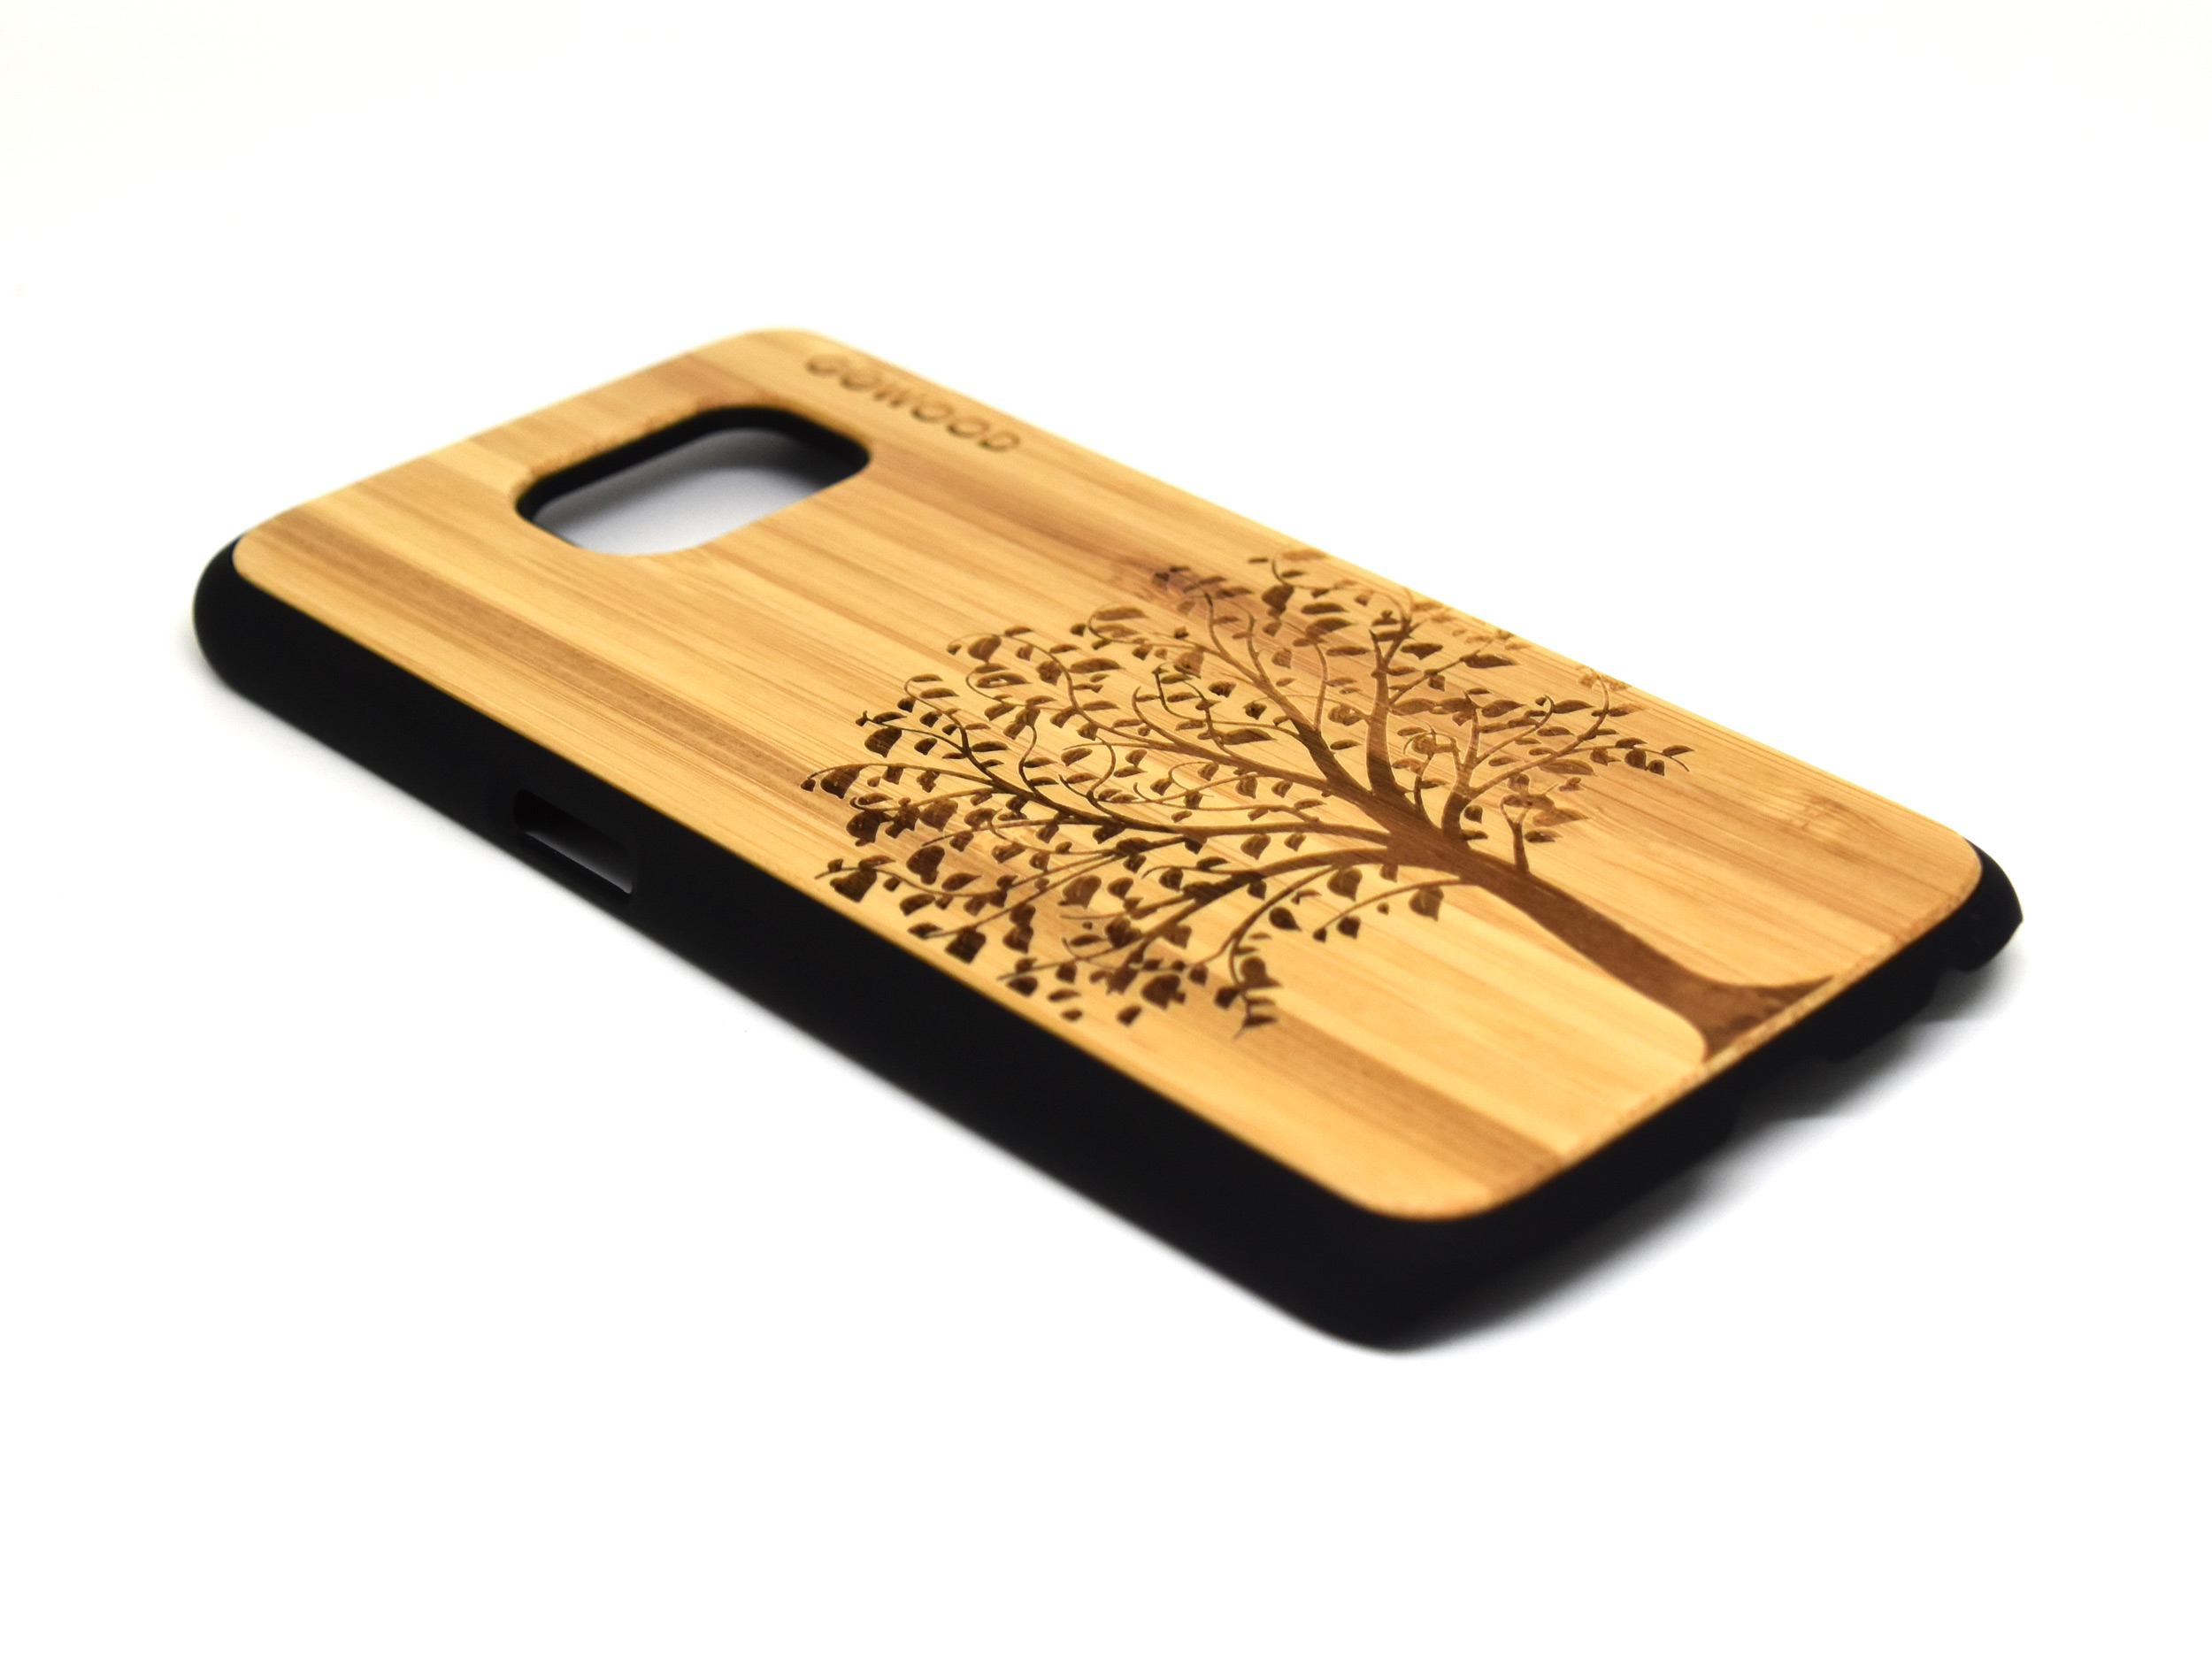 Samsung Galaxy S6 case bamboo wood with tree